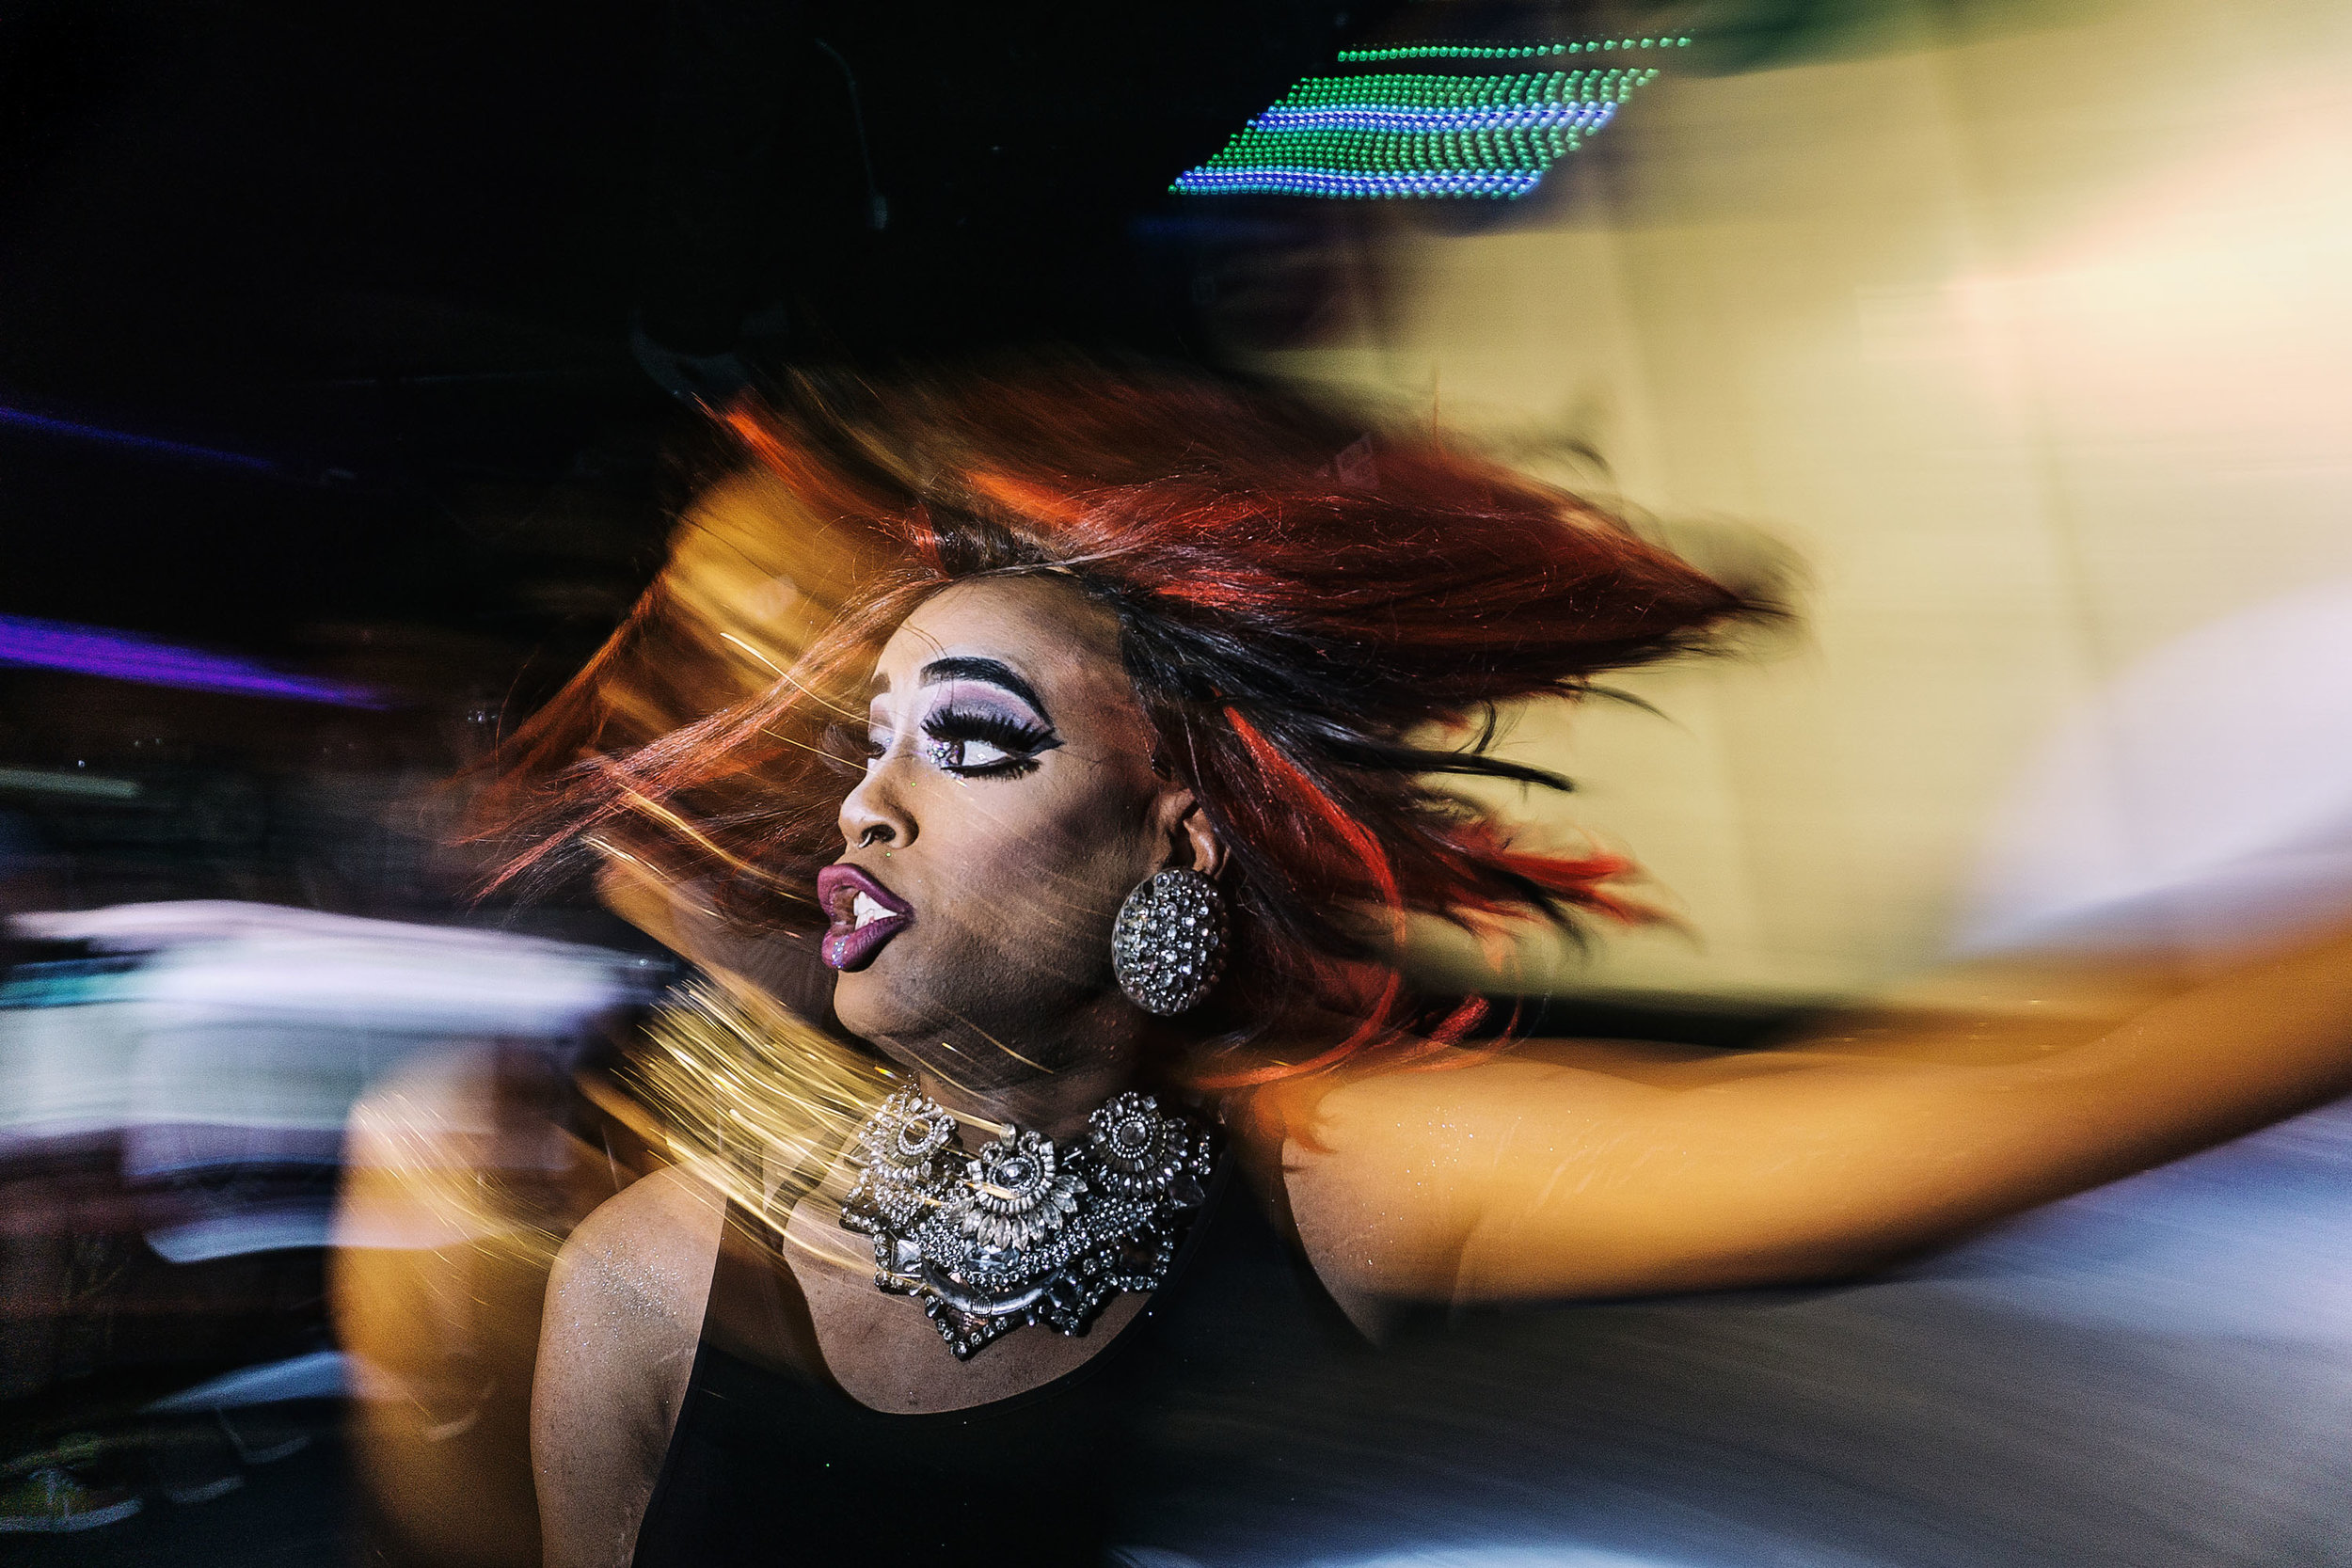 A drag queen performs during the Pride Week celebrations at Studio 13 in downtown Iowa City on Friday, Jun. 16, 2018.